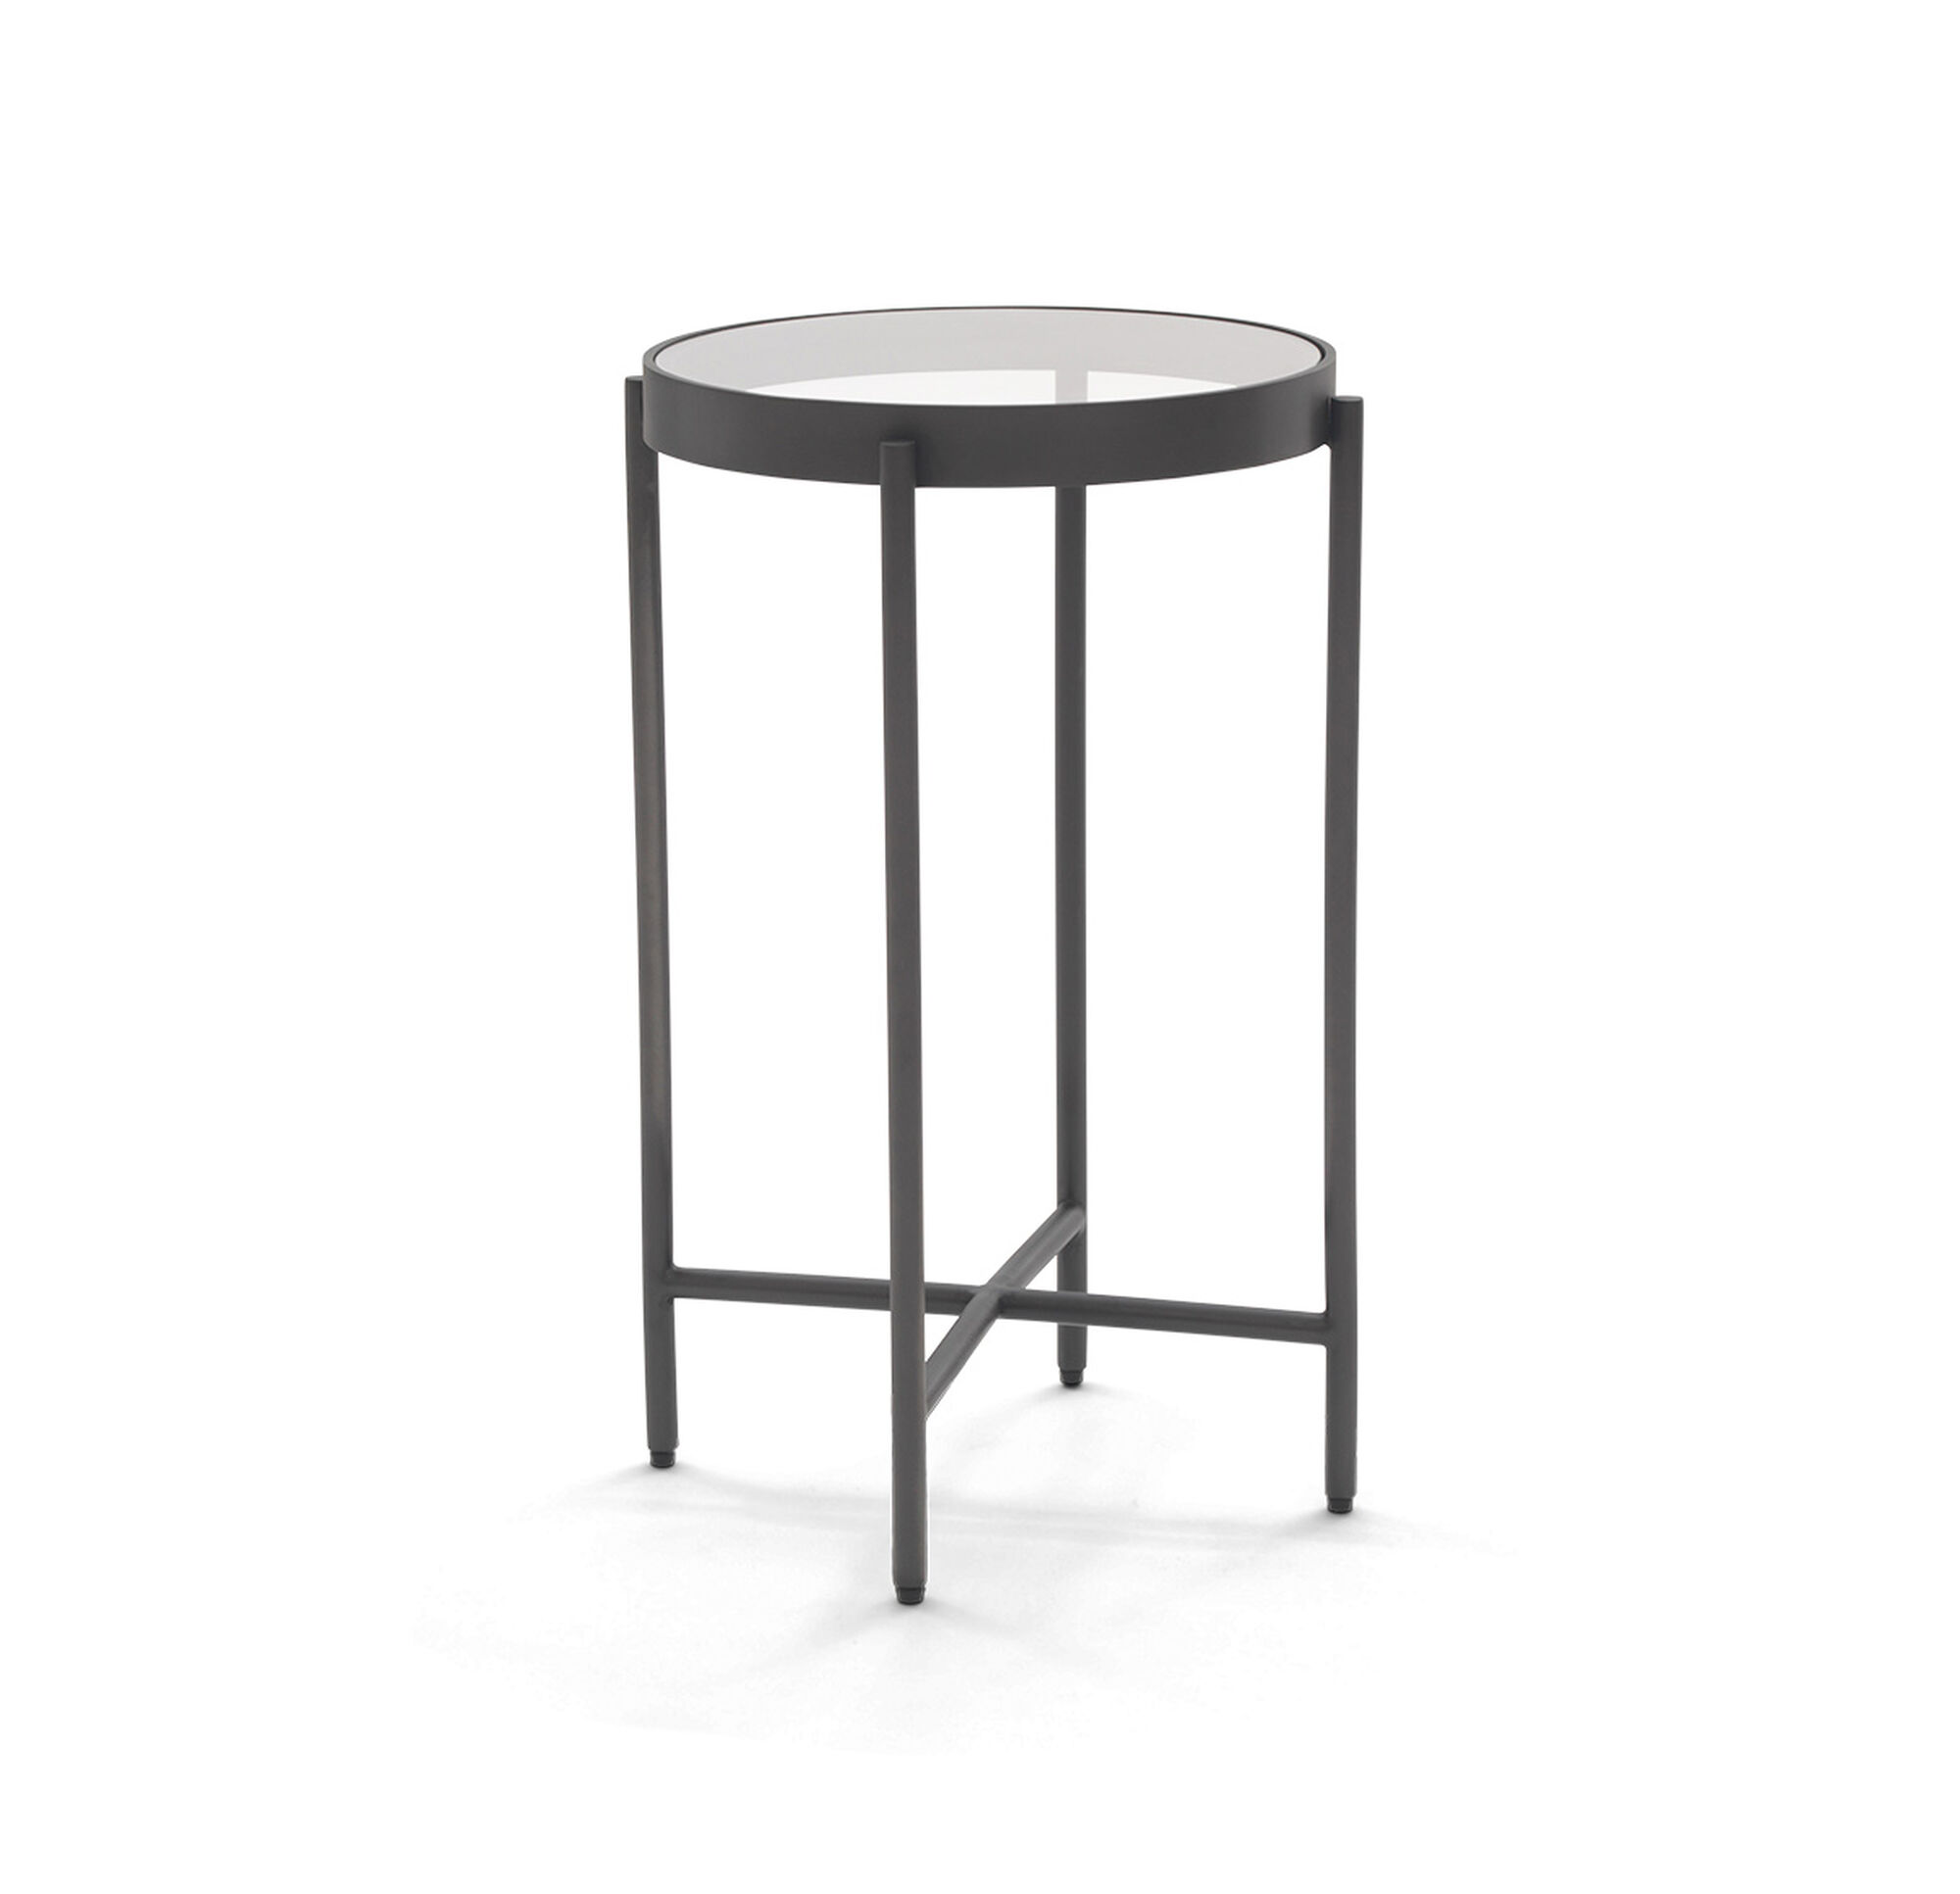 TURINO ACCENT TABLE - White marble and metal round accent table